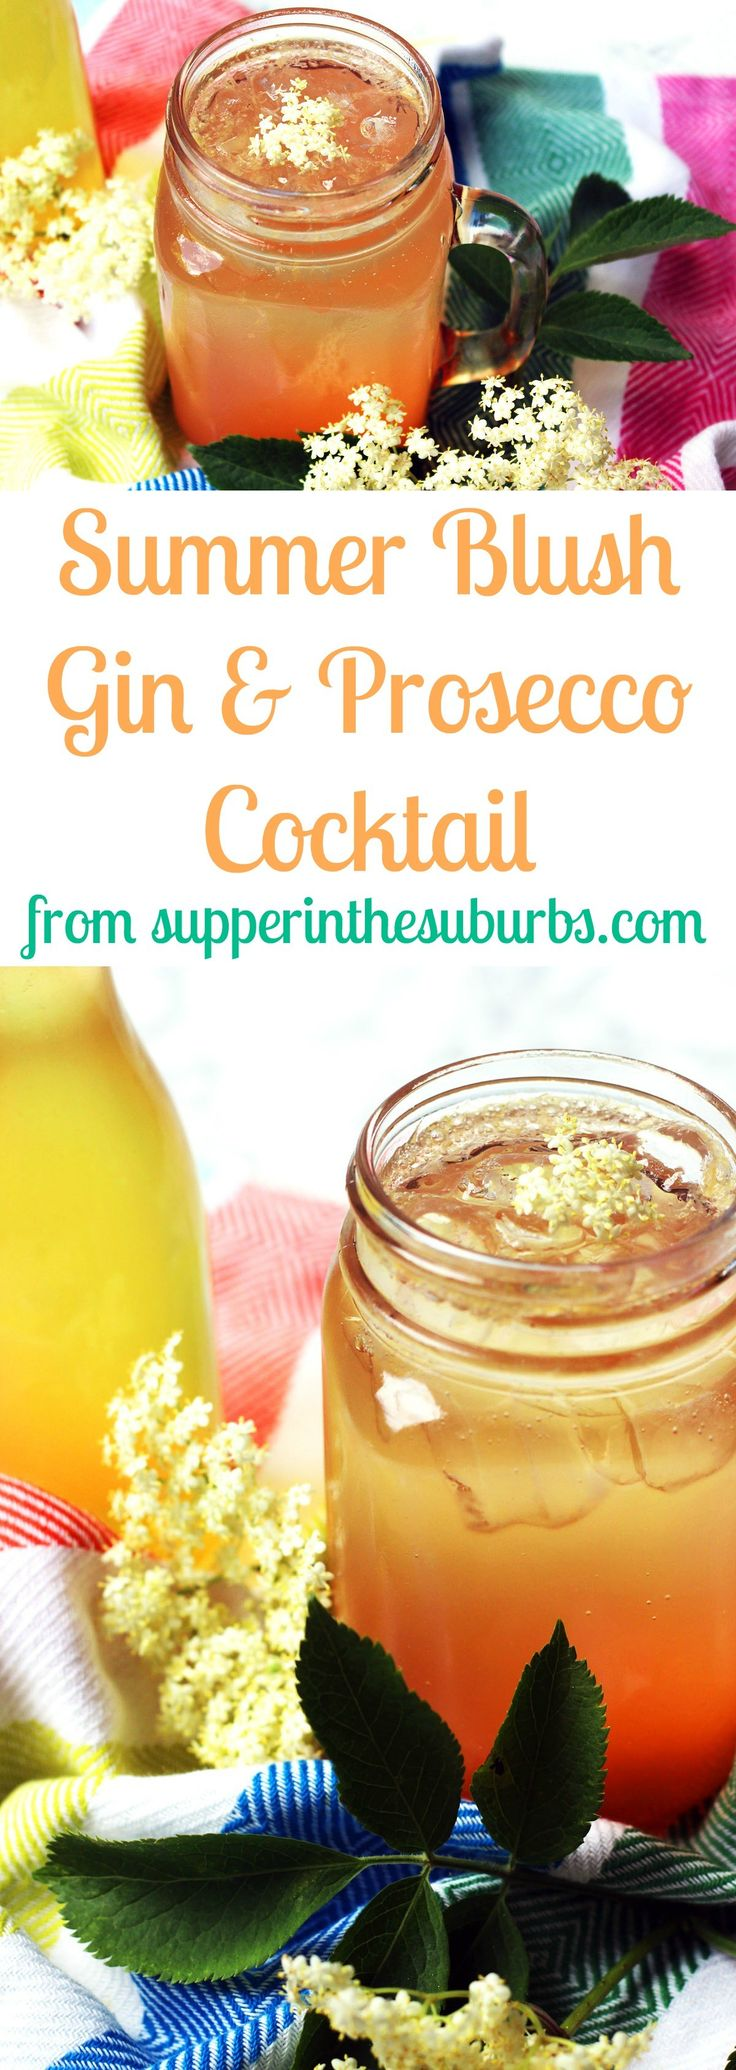 Summer Blush a Gin and Prosecco Cocktail